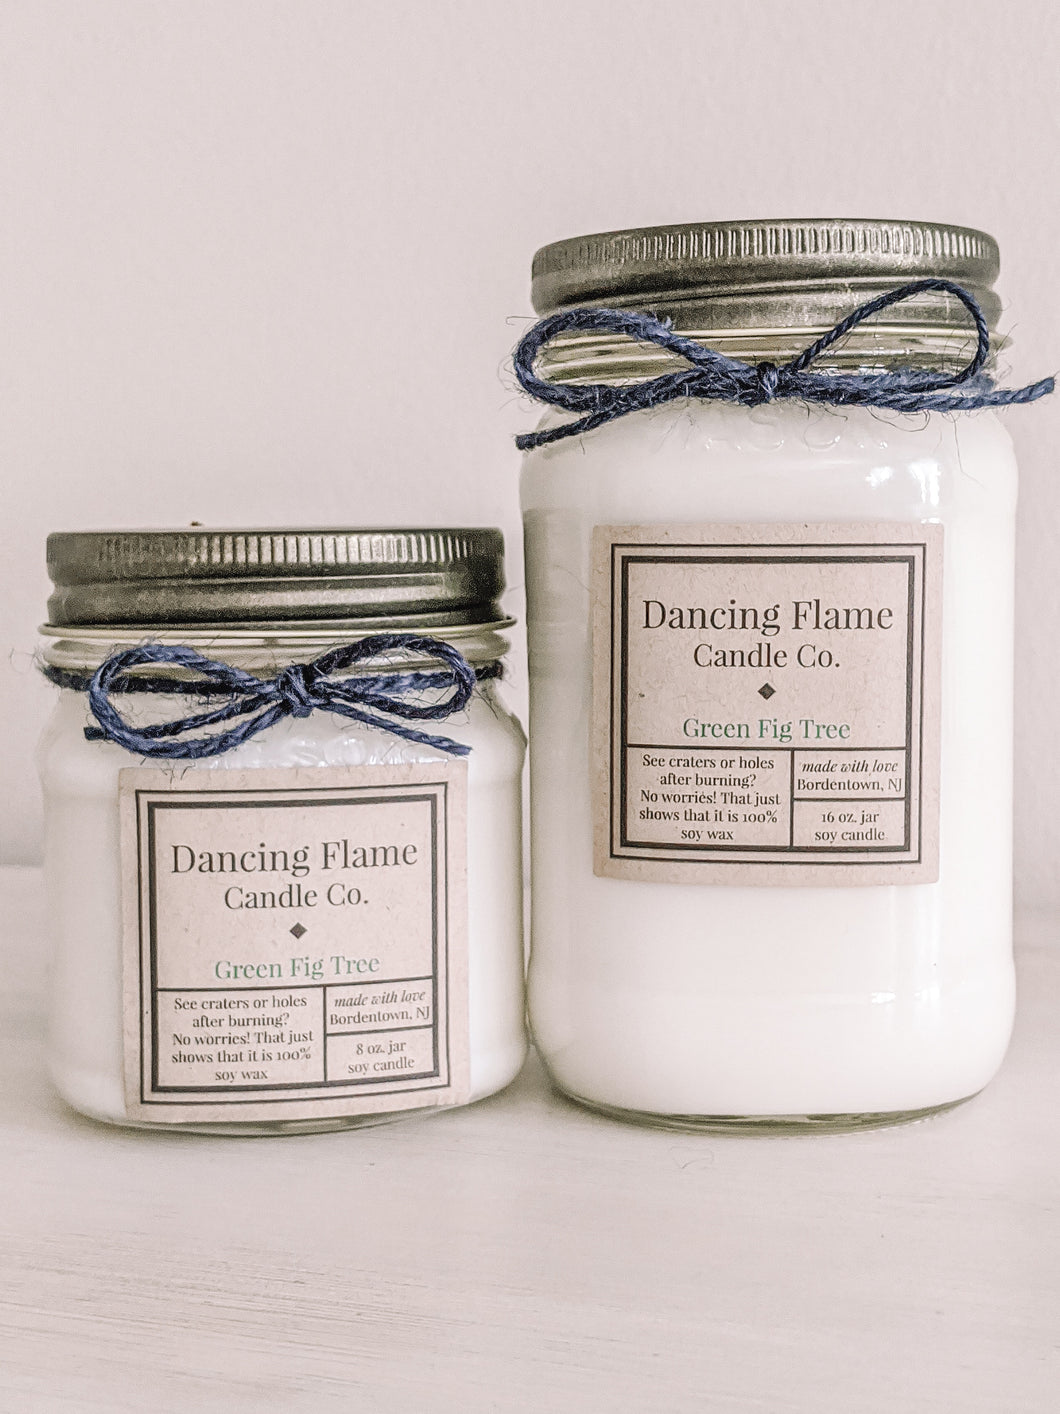 Green Fig Tree Soy Wax Candle